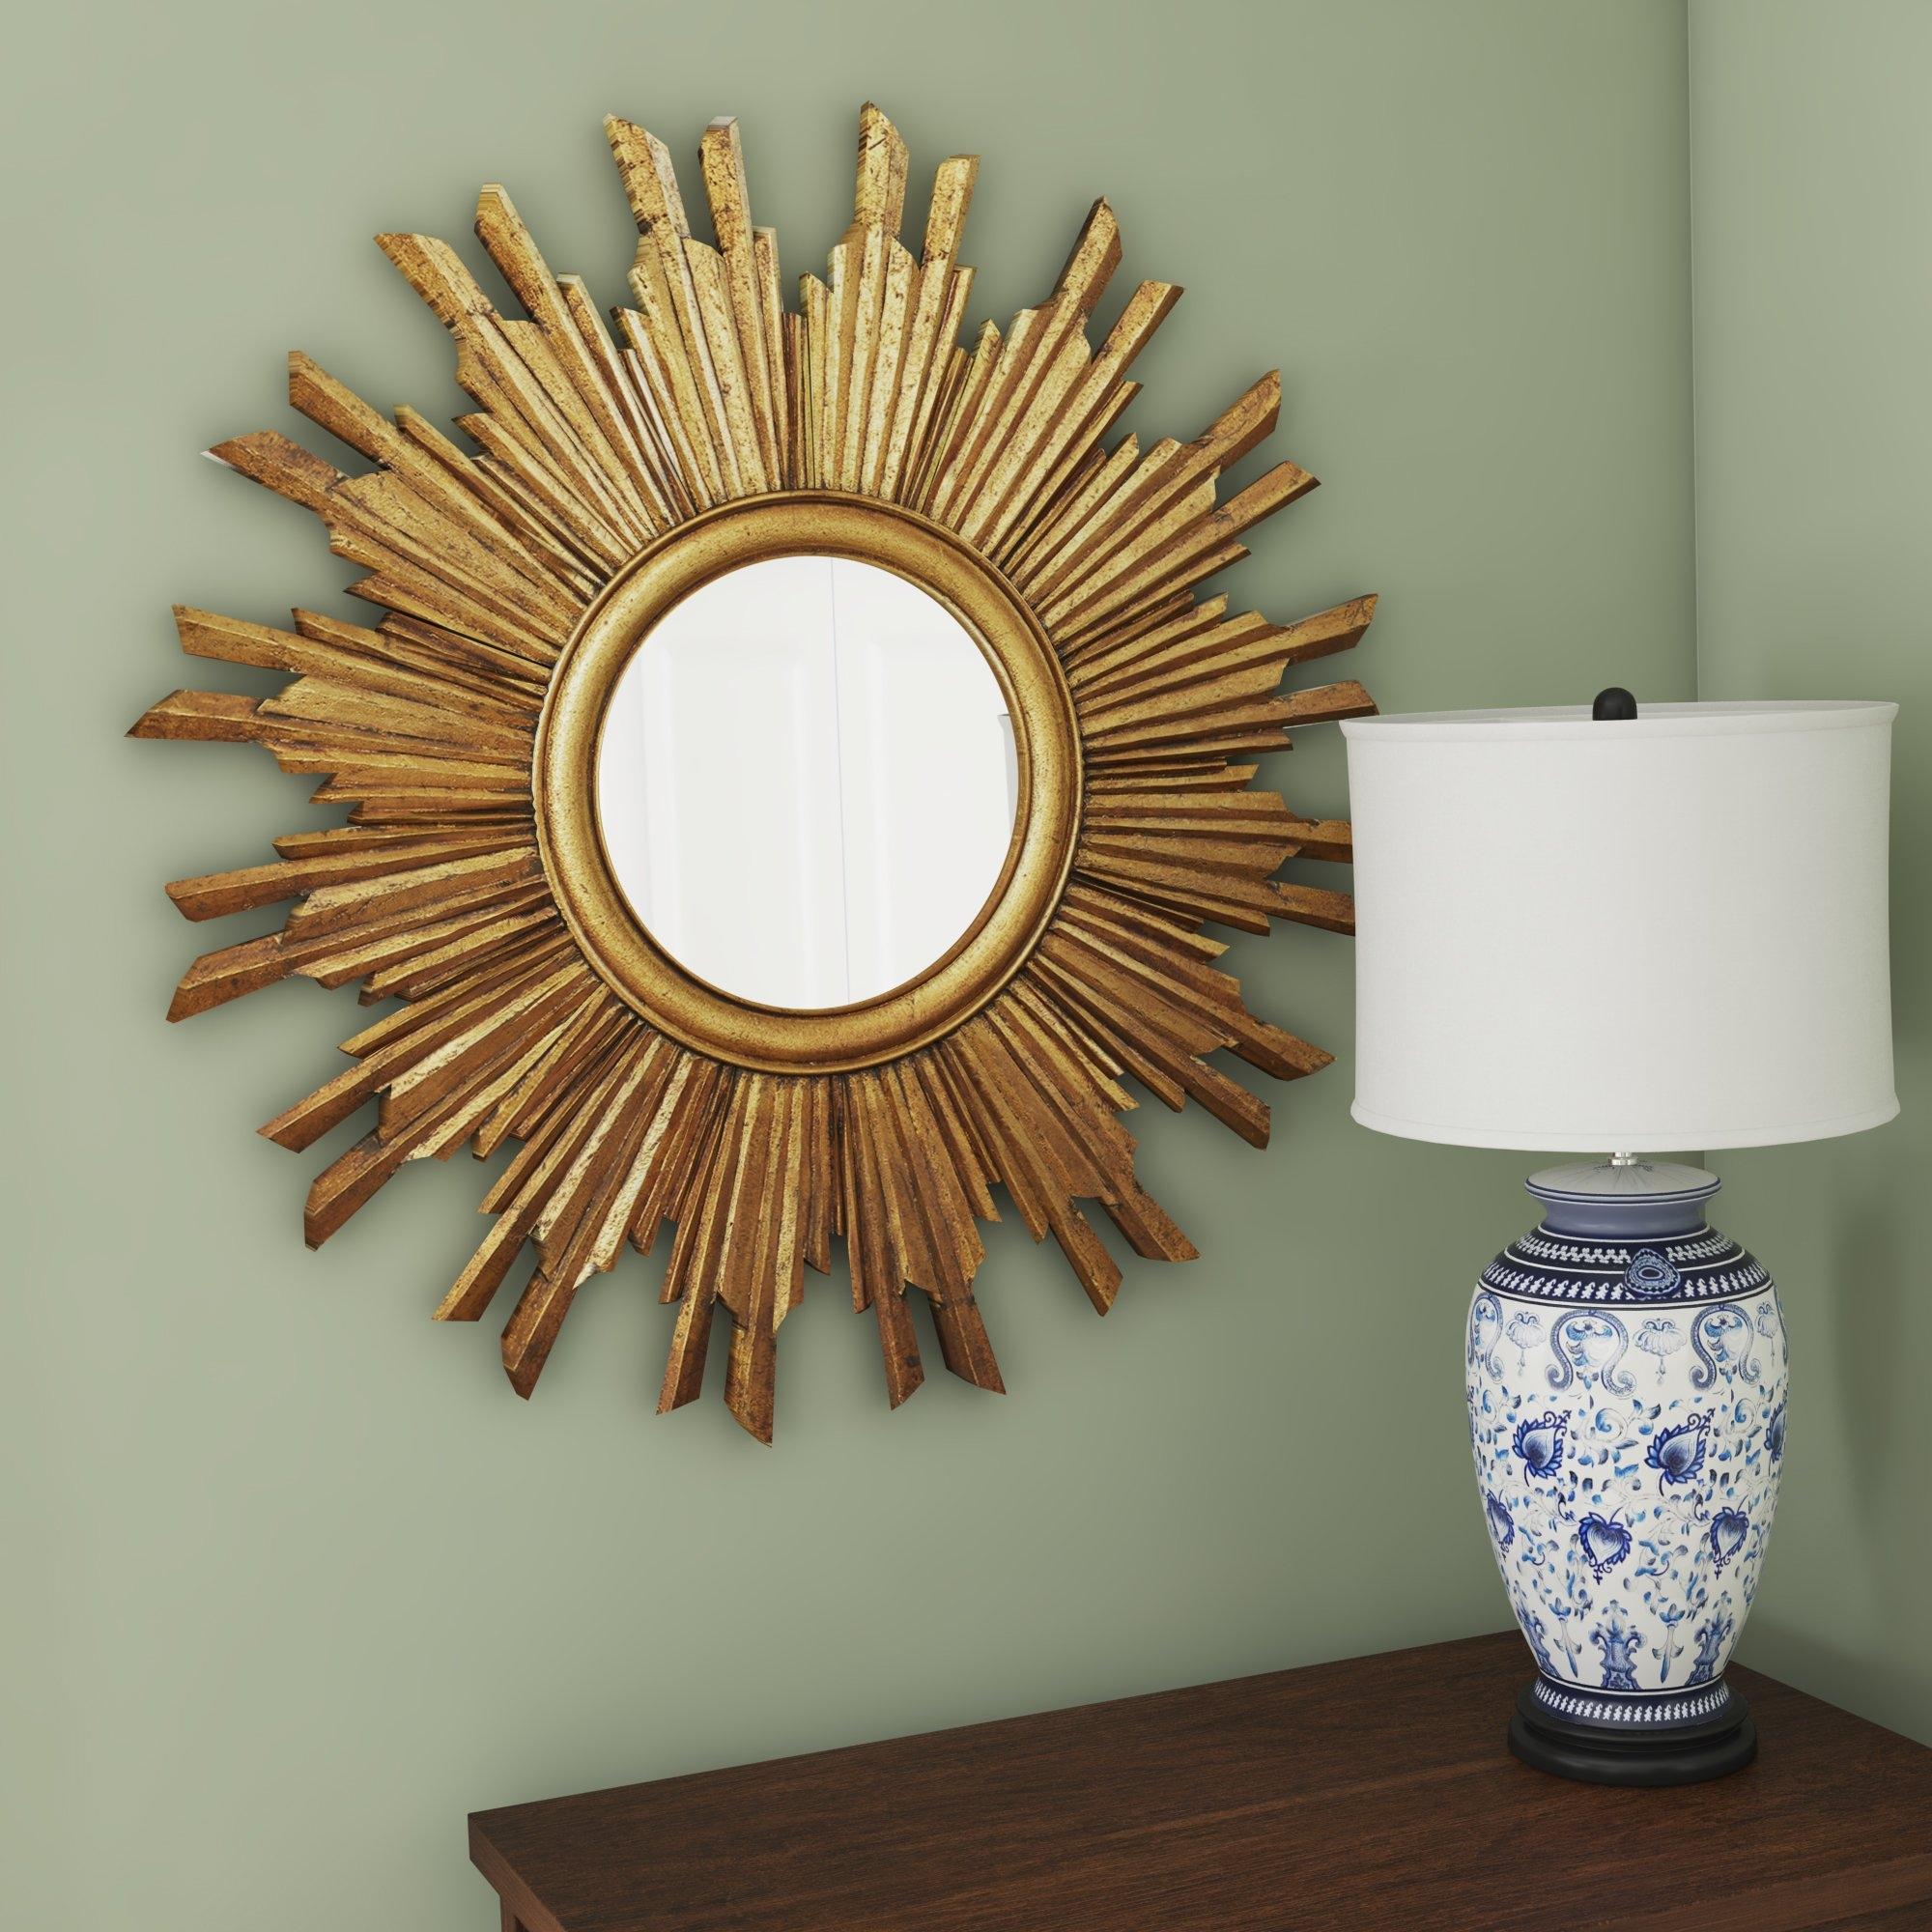 Sunburst Mirrors Youll Love Wayfair For Sun Mirrors For Sale (Image 12 of 15)